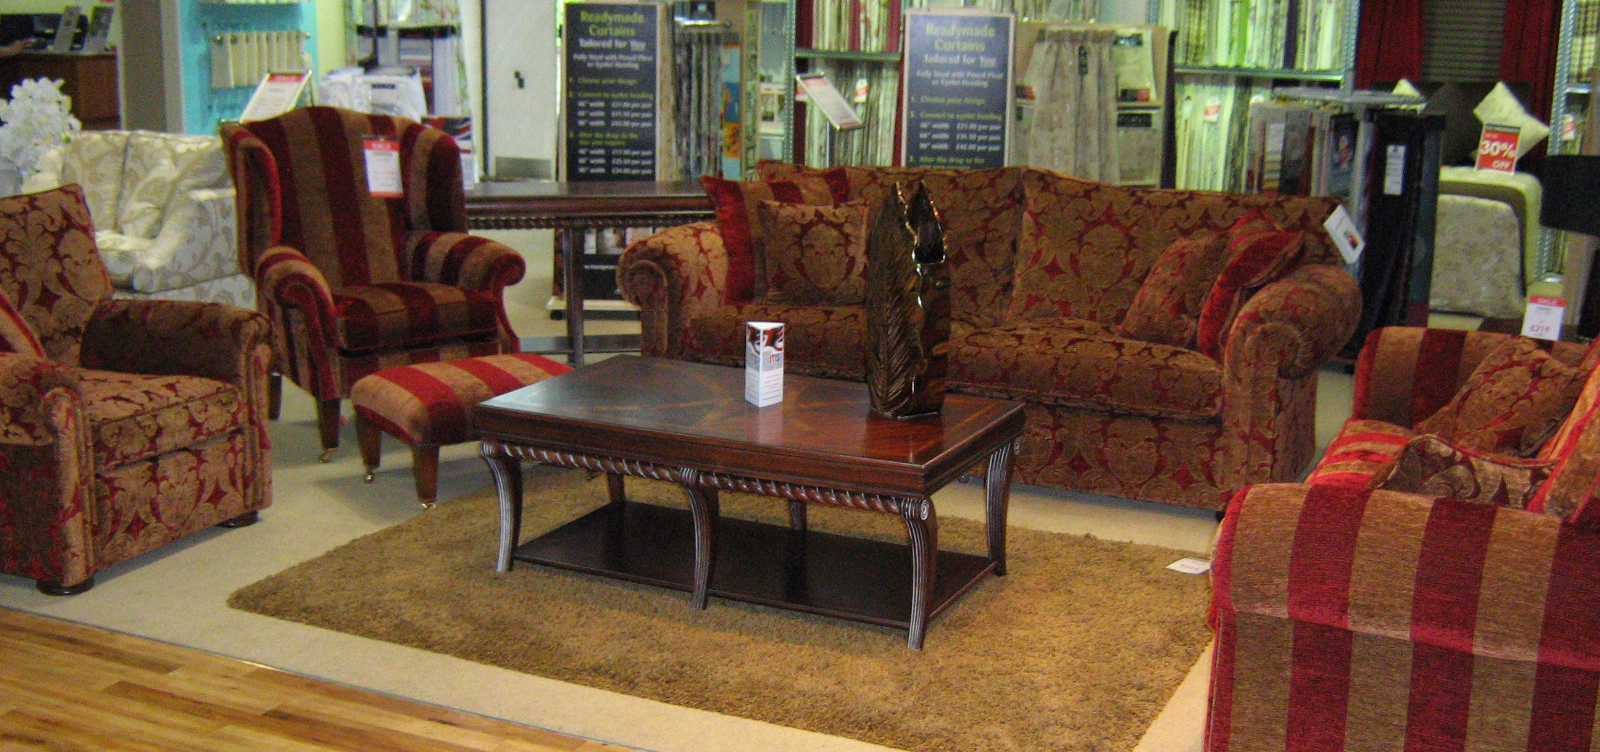 The Waldorf 2½ Seater Sofa And Somerset Wing Chair Are Finished In A  Wonderfully Opulent Red And Gold Striped Fabric And Comes With A Matching  Footstool On ...